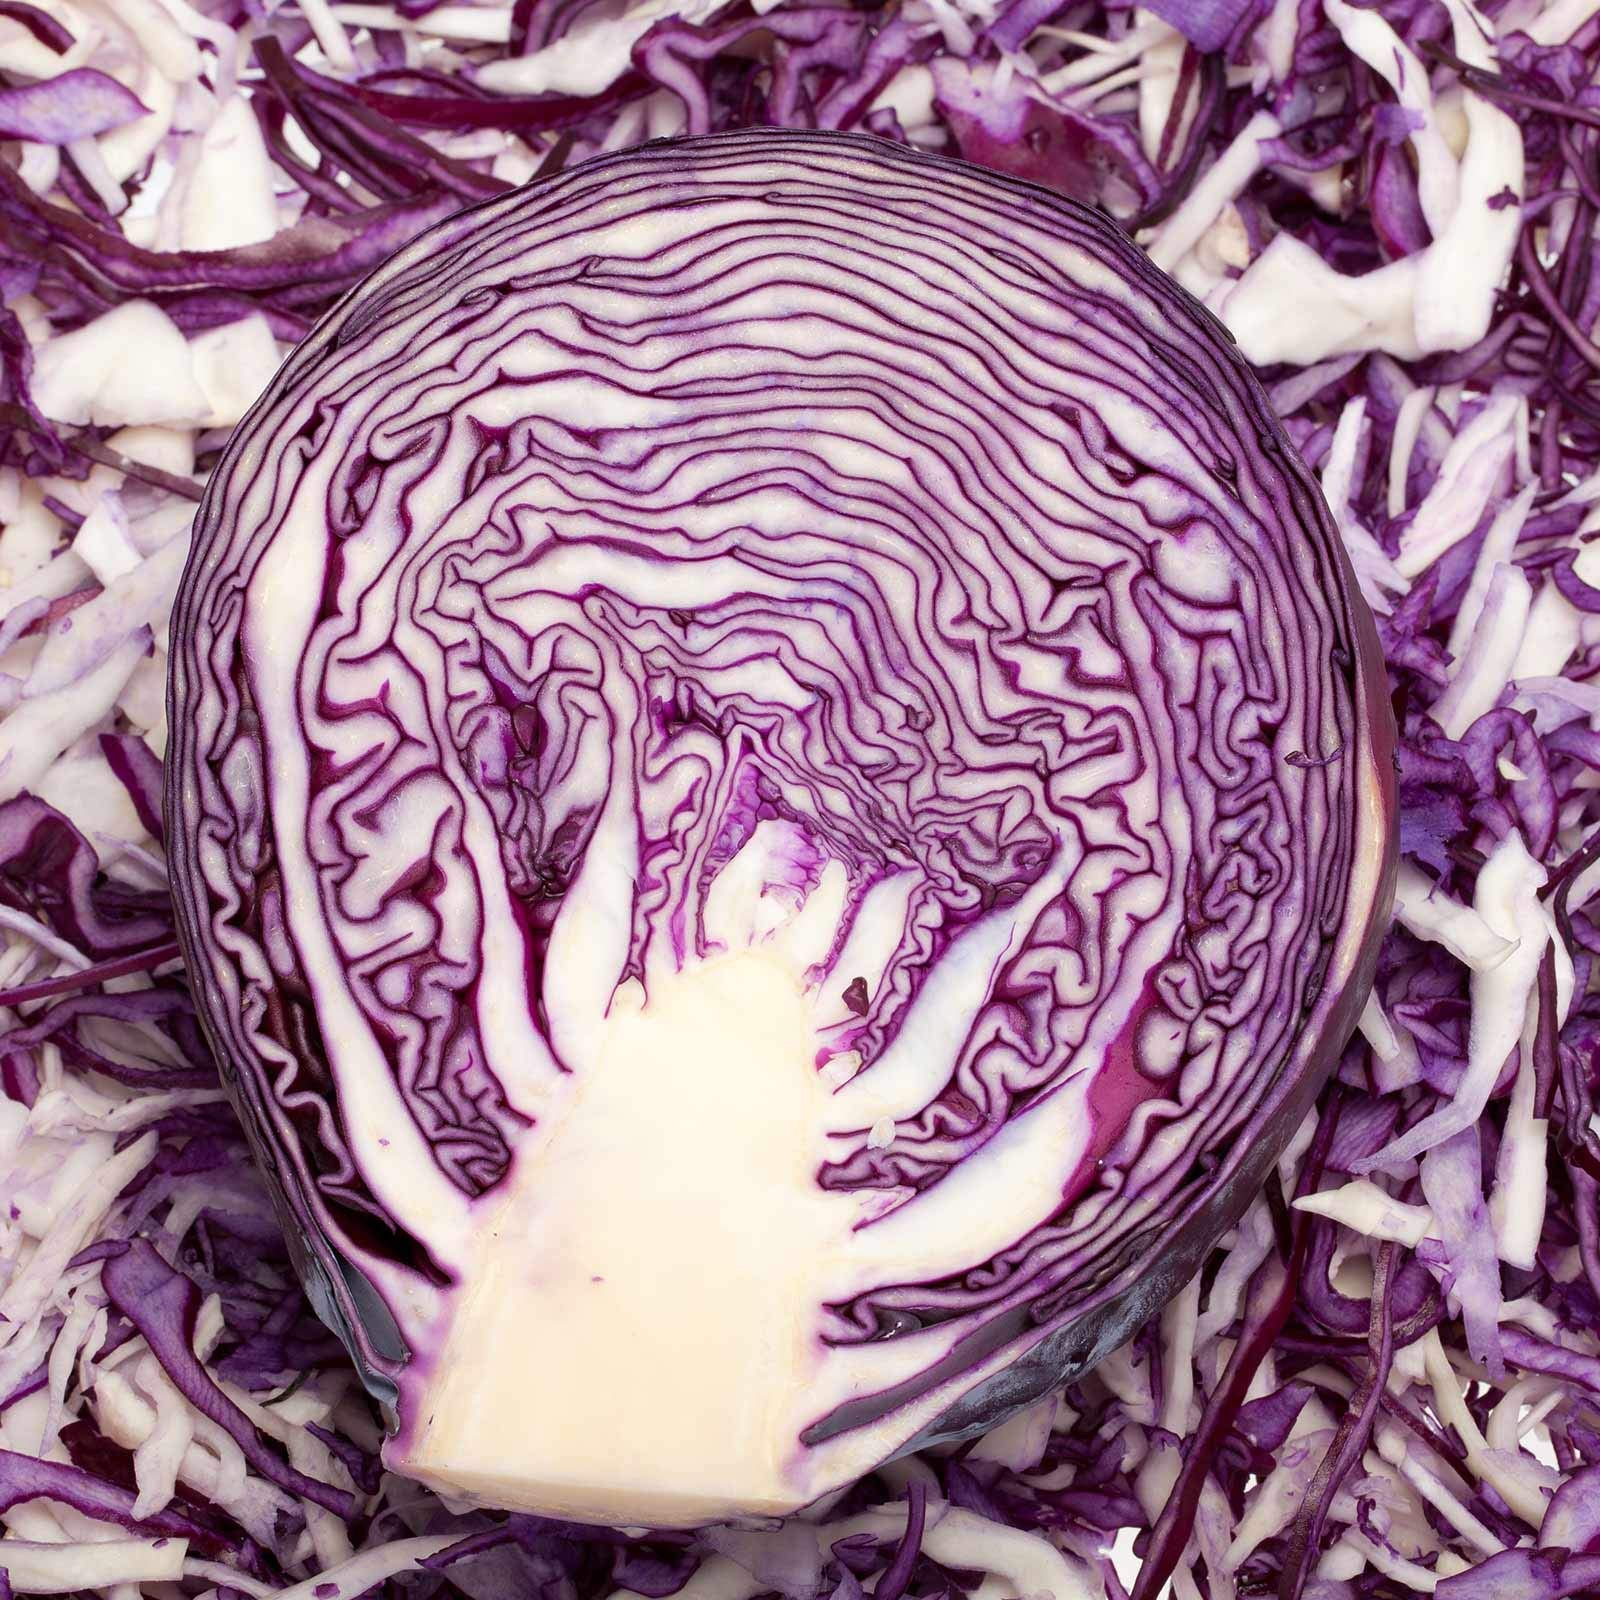 Red Rock Mammoth Cabbage Seeds: 1 Lb - Non-GMO, Chemical Free Sprouting Seeds for Vegetable Garden & Growing Micro Greens by Mountain Valley Seed Company